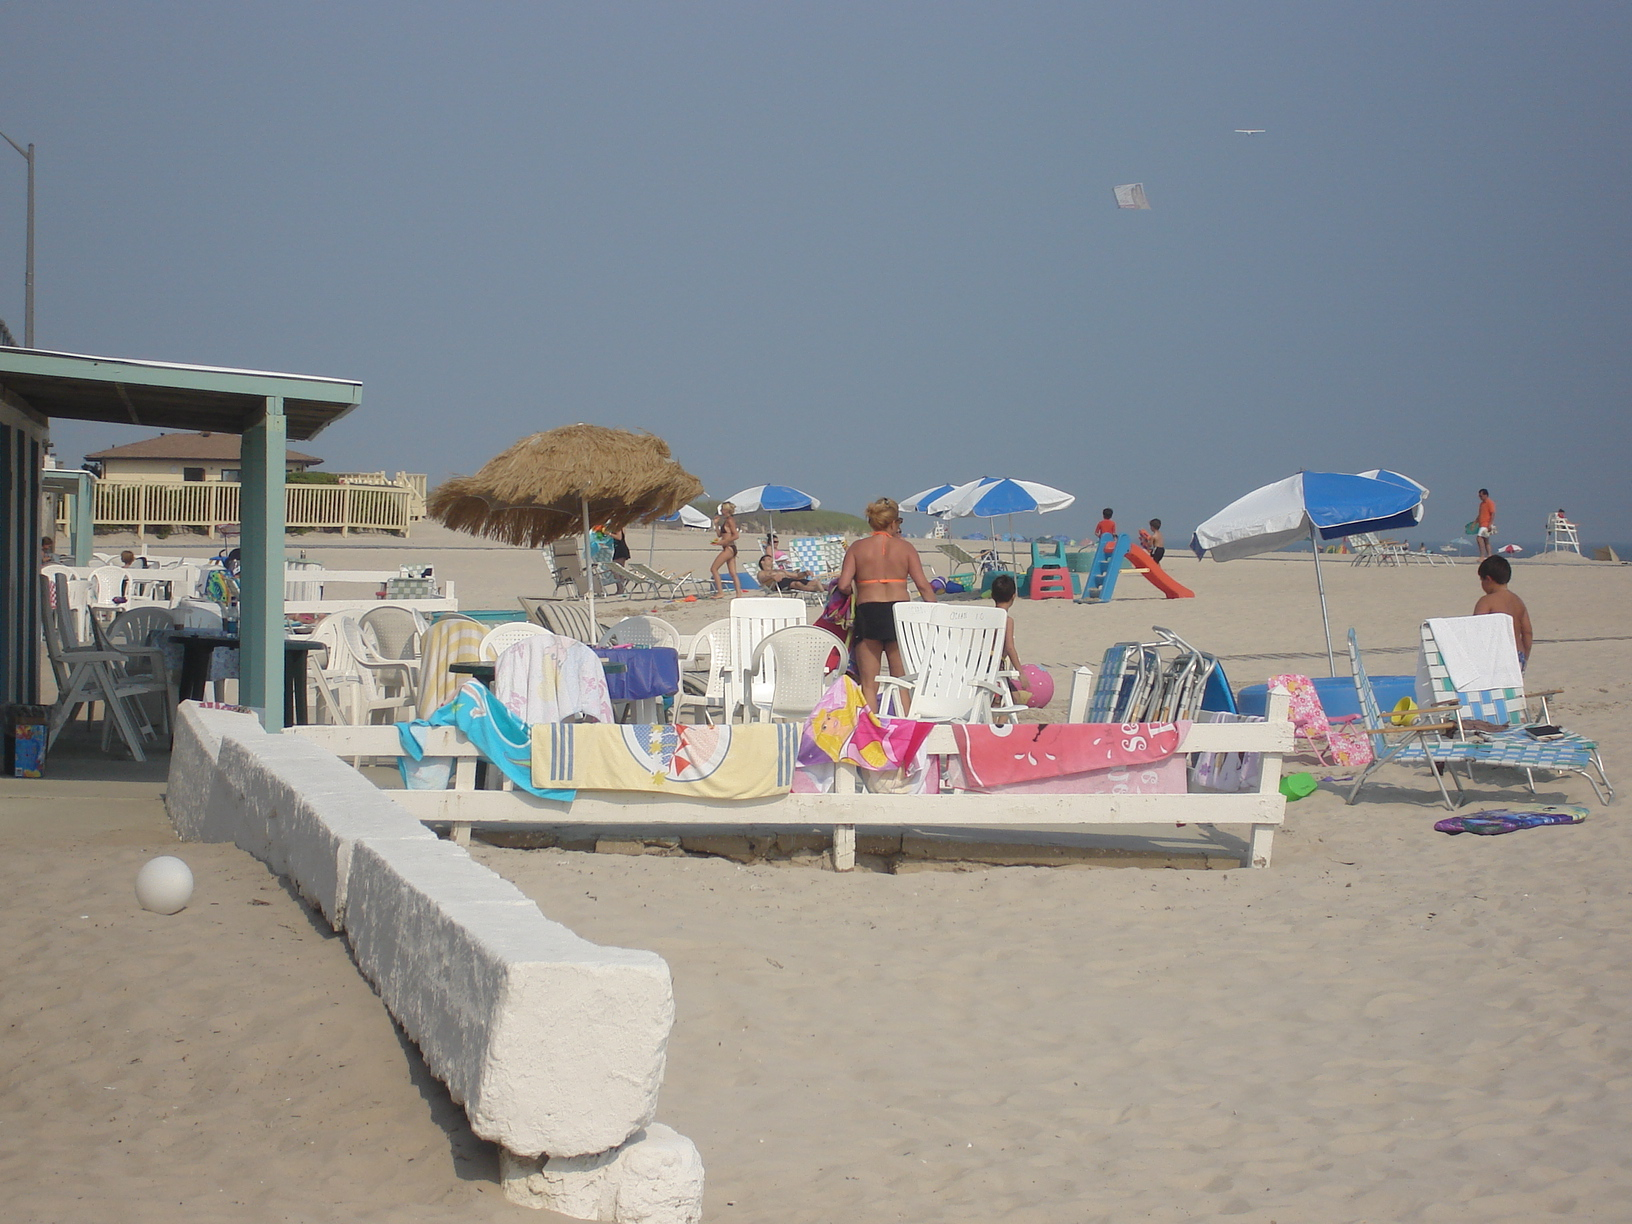 ed589f5bc Beach Clubs in Long Island - NYC Baby Guide - Little Babe and the ...